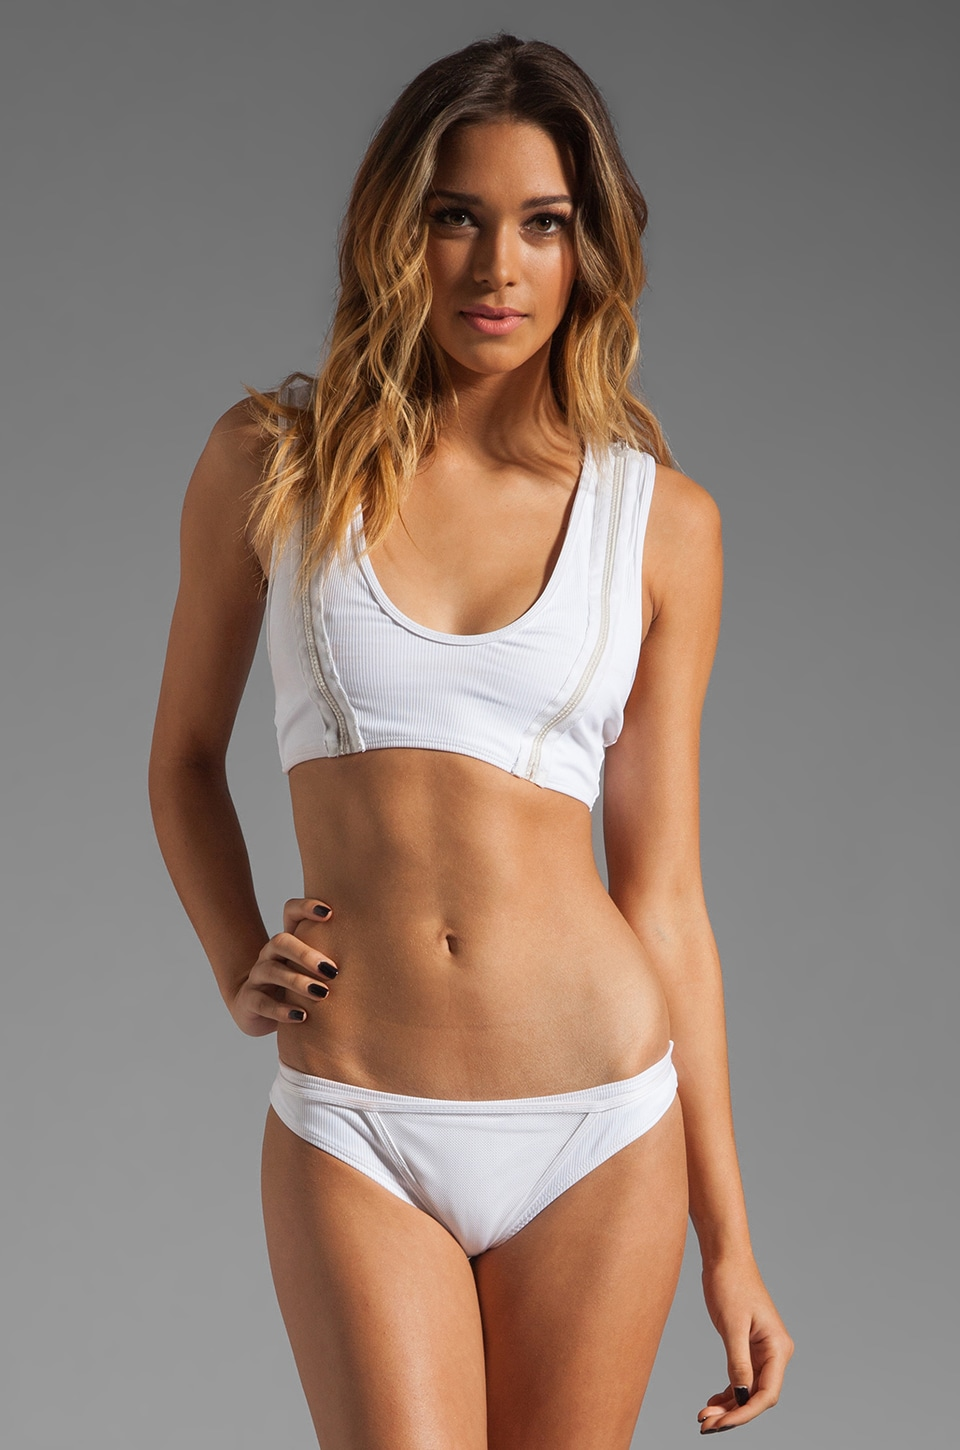 MINIMALE ANIMALE Junk Love Bikini in Blanco Rib with Blanco Mesh Overlay